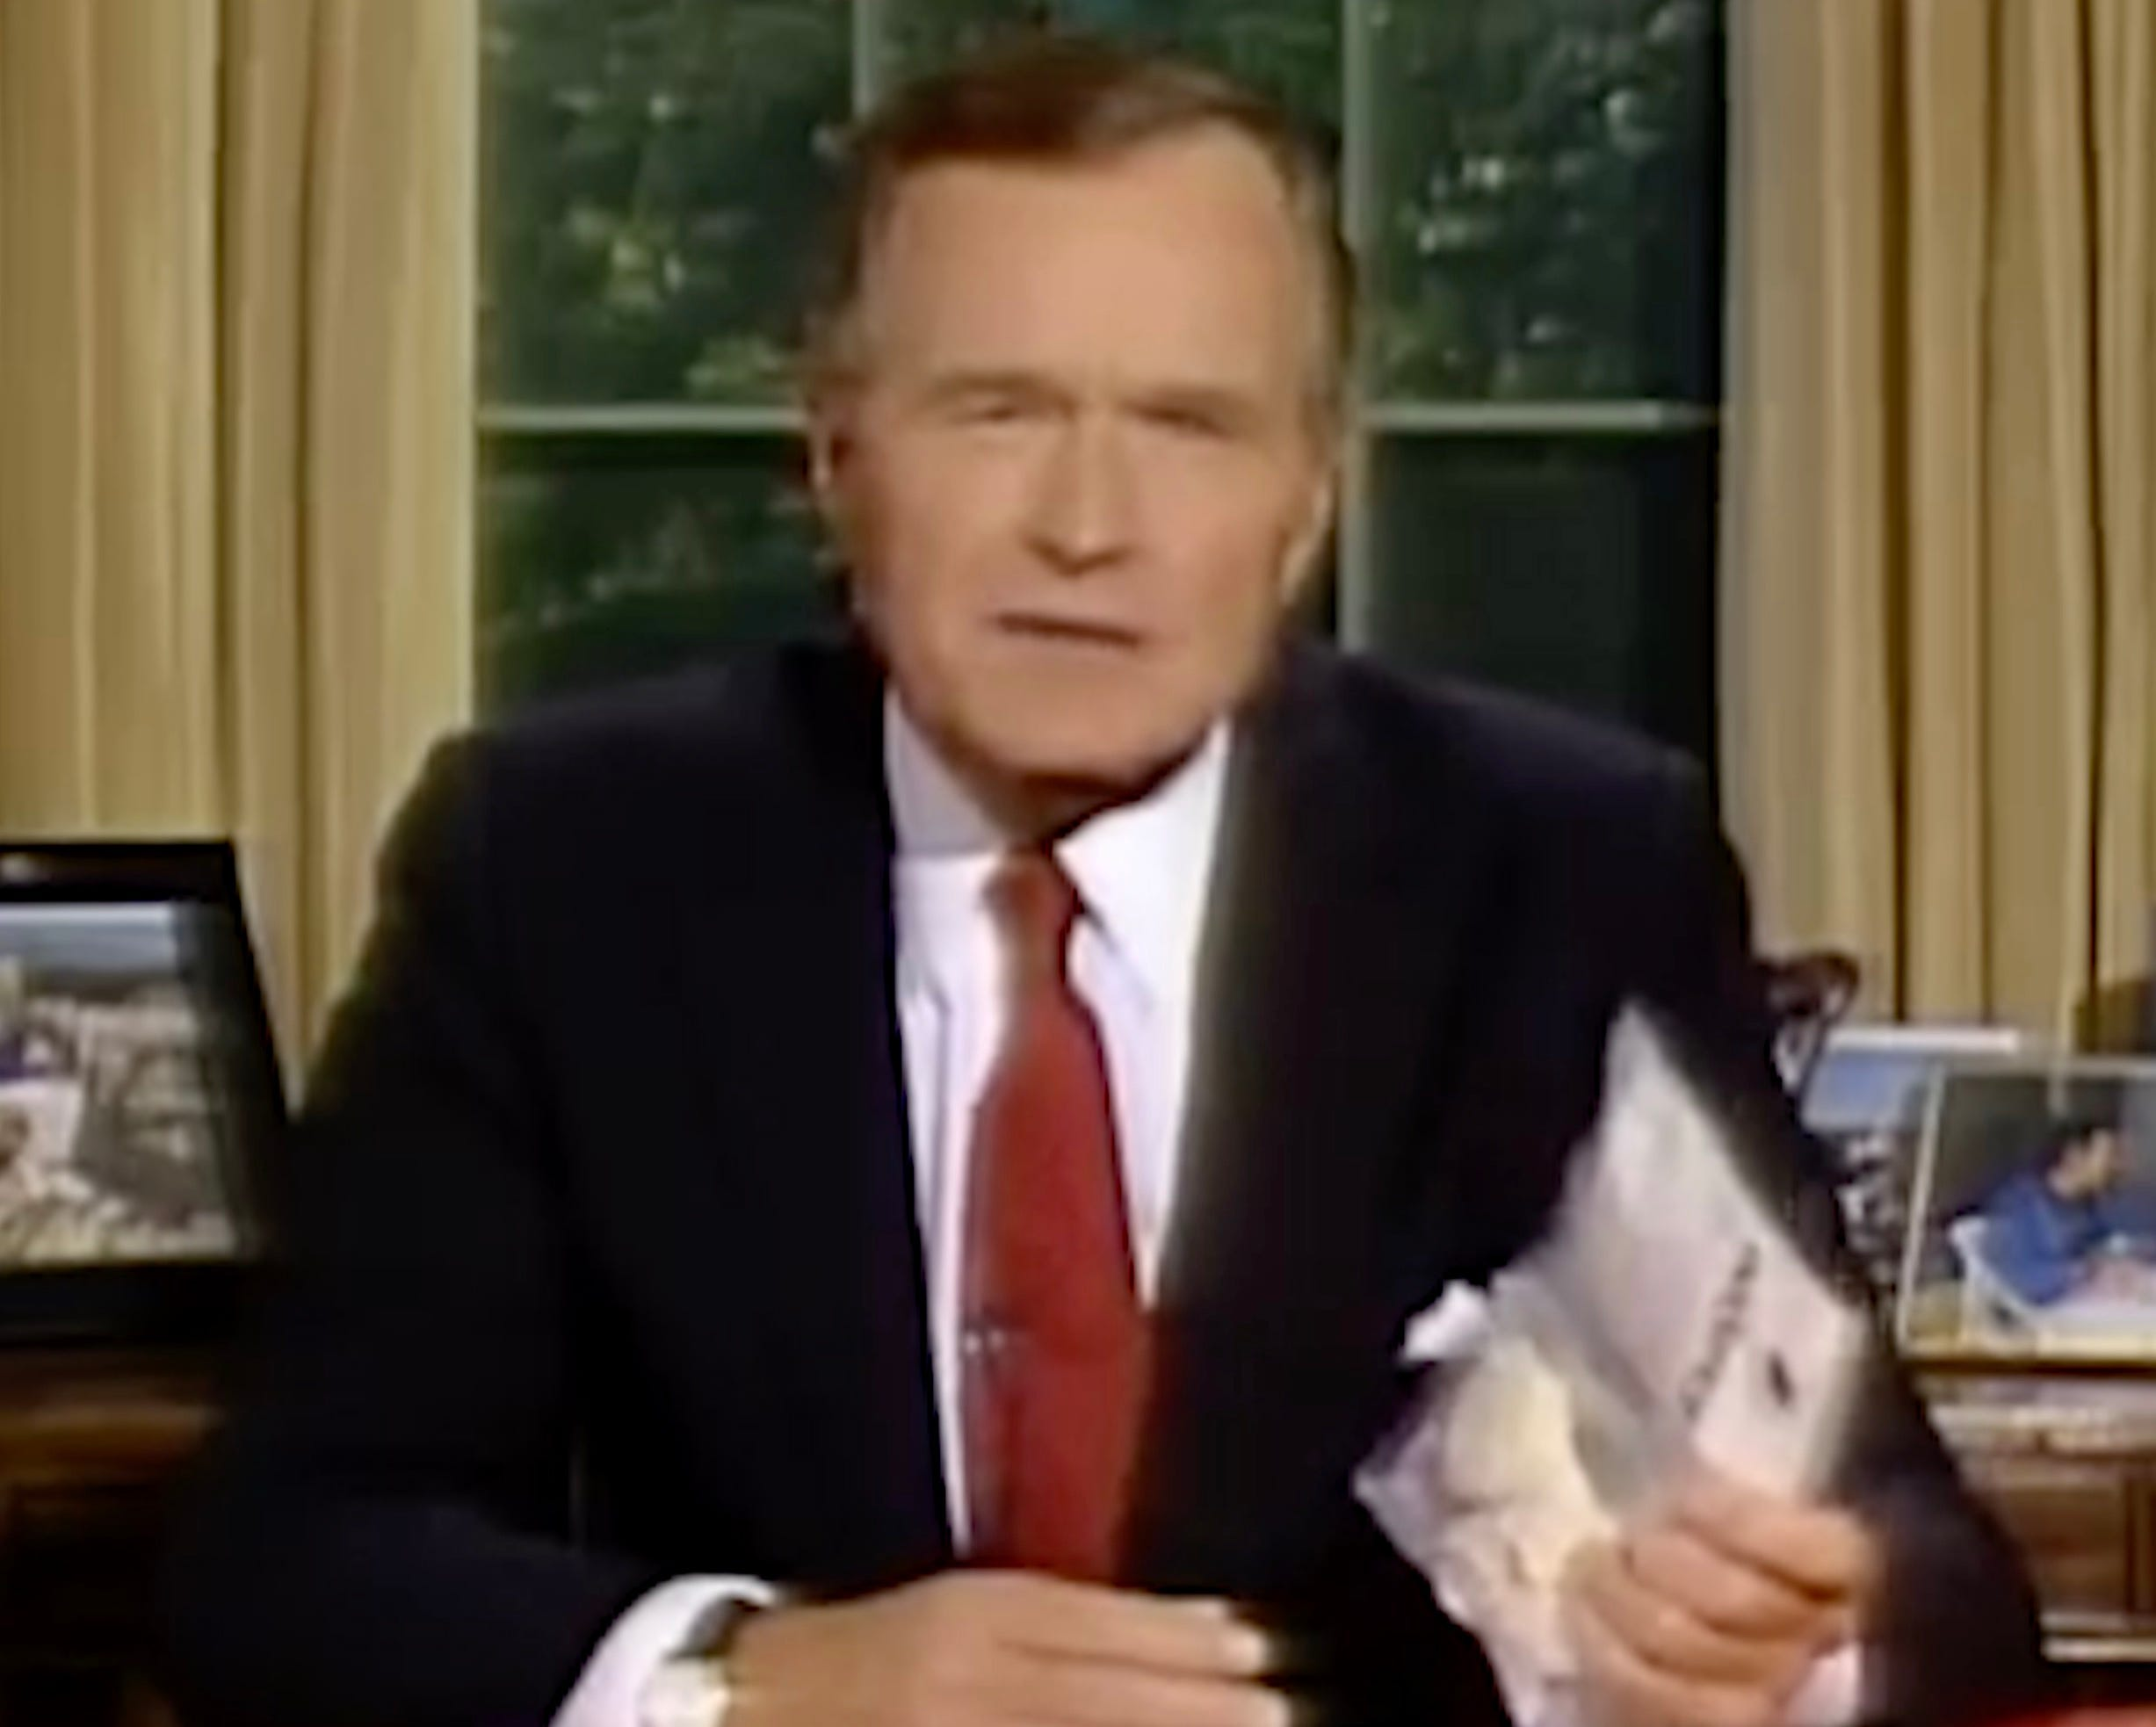 President George H. W. Bush during a 1989 televised address holds up a bag of crack cocaine purchased from a dealer outside the White House.